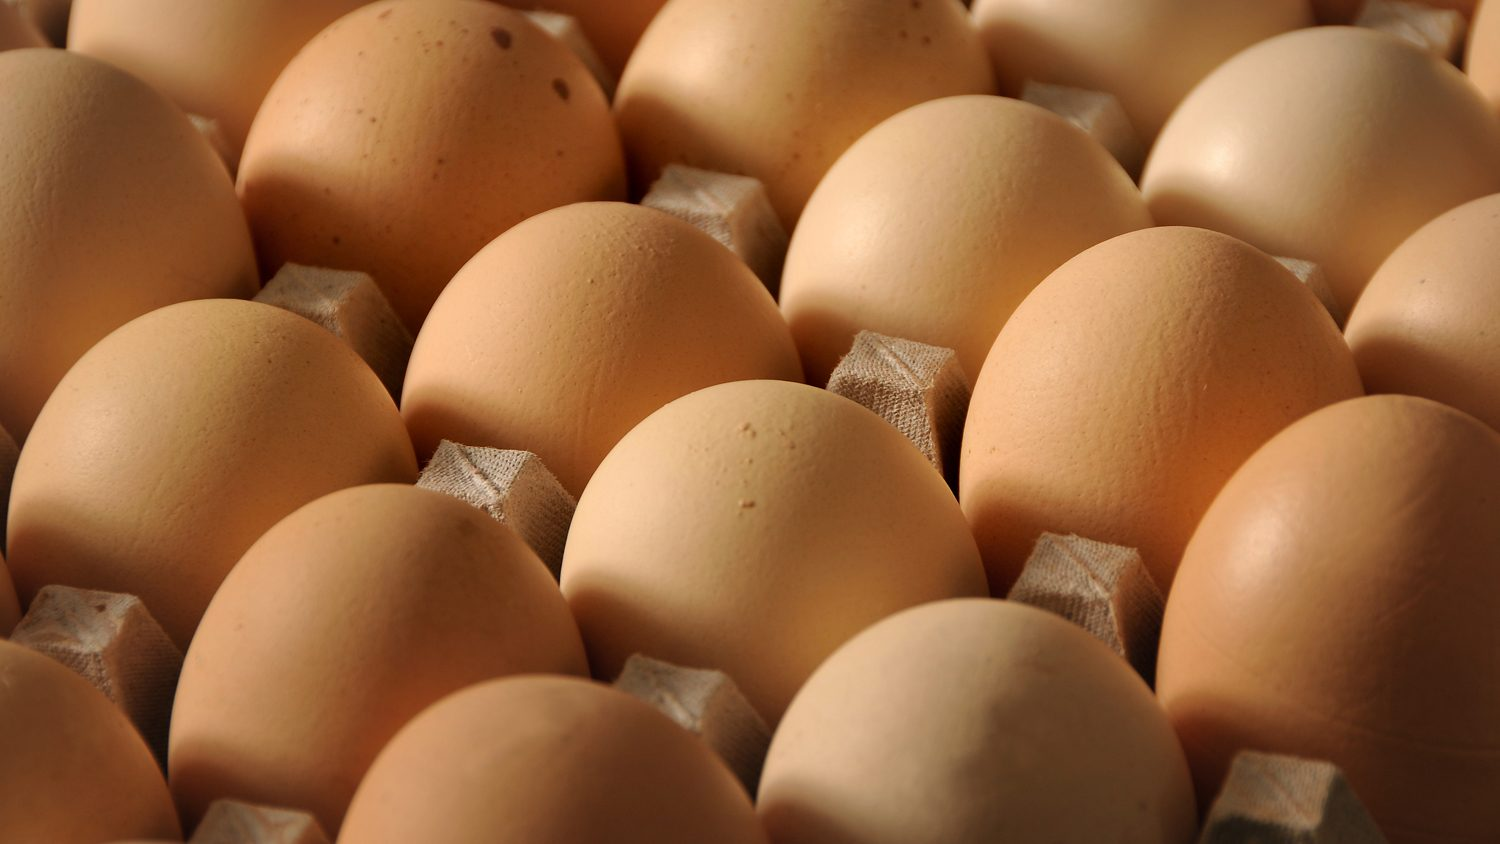 Close-up photo of brown eggs in carton.